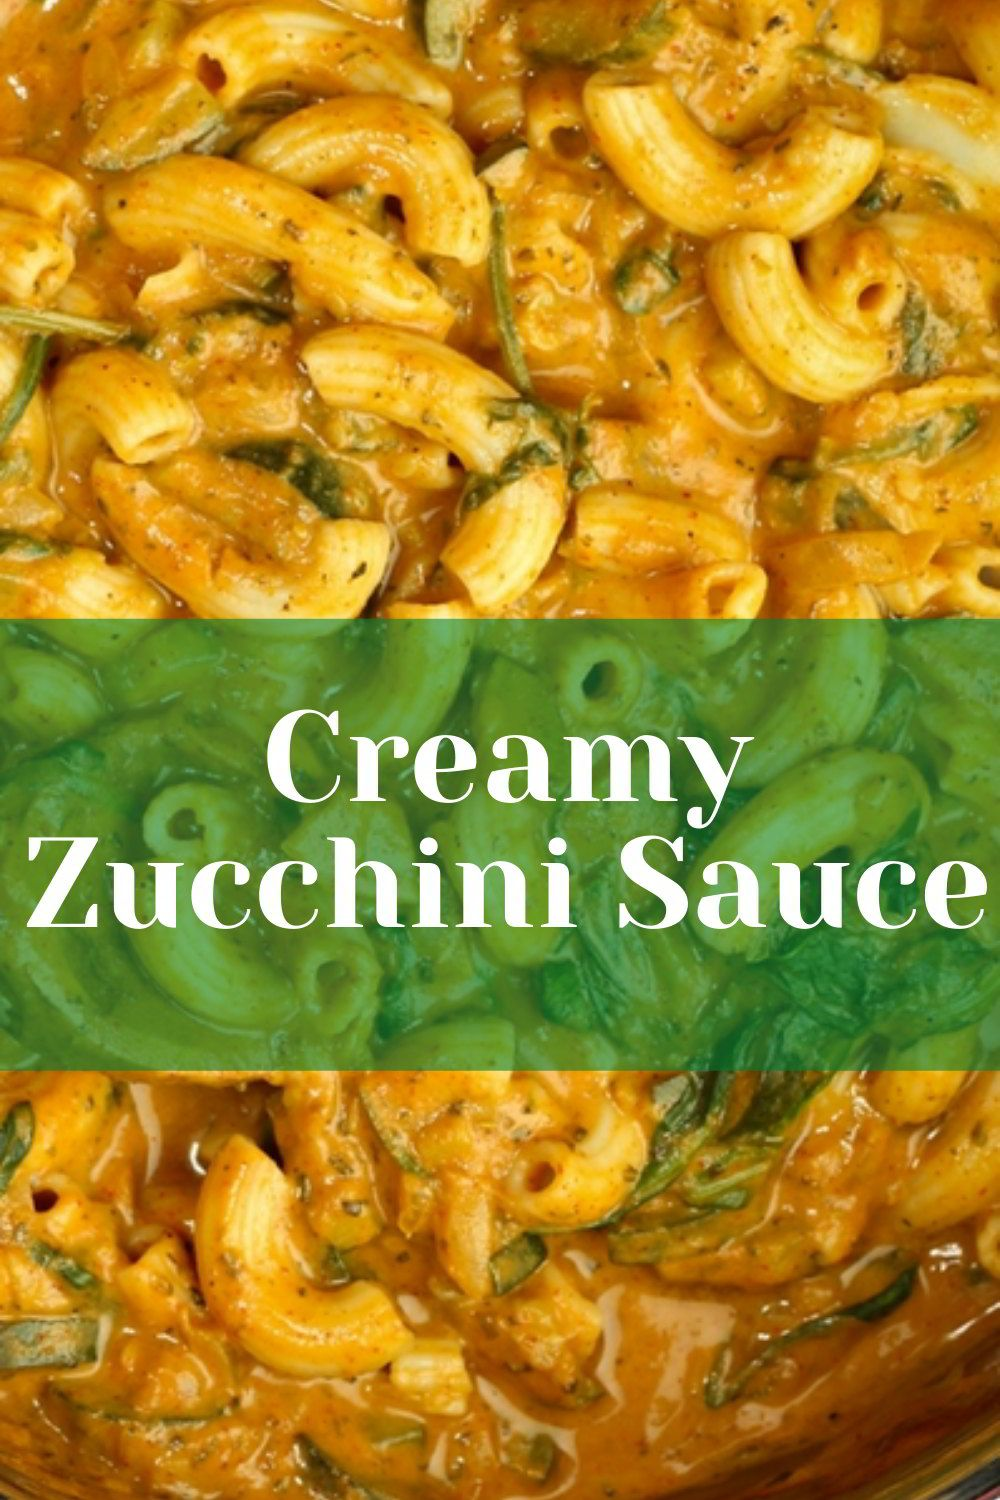 Creamy Zucchini Sauce In 2020 Easy Cooking Recipes Easy Lunch Recipes Favorite Recipes Dinner